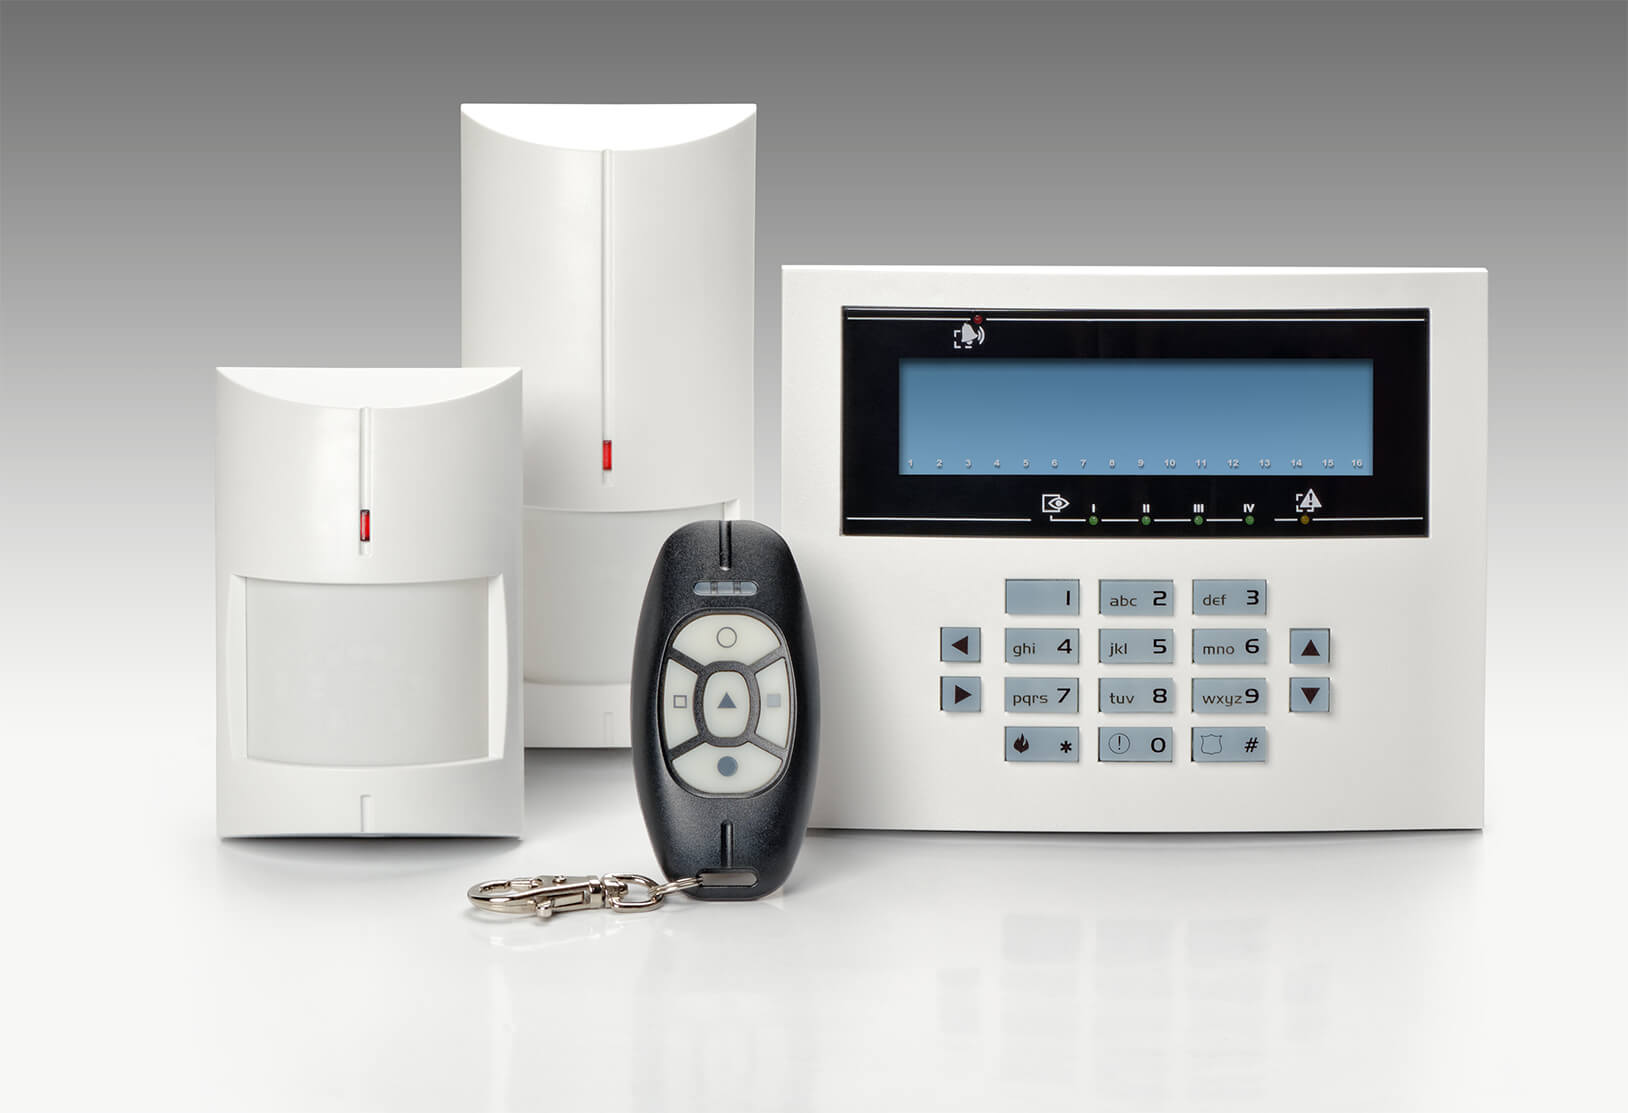 Alarm Repair Prices for Local alarm engineer.24 hours Emergency Alarm Repair Prices - The most competitive PRICES of Alarm Repair in near me / in your area. No Hidden charges,No Contracts, Book as you need.Ad-hoc Alarm Engineers .All alarm makes repaired.Same day service ability.